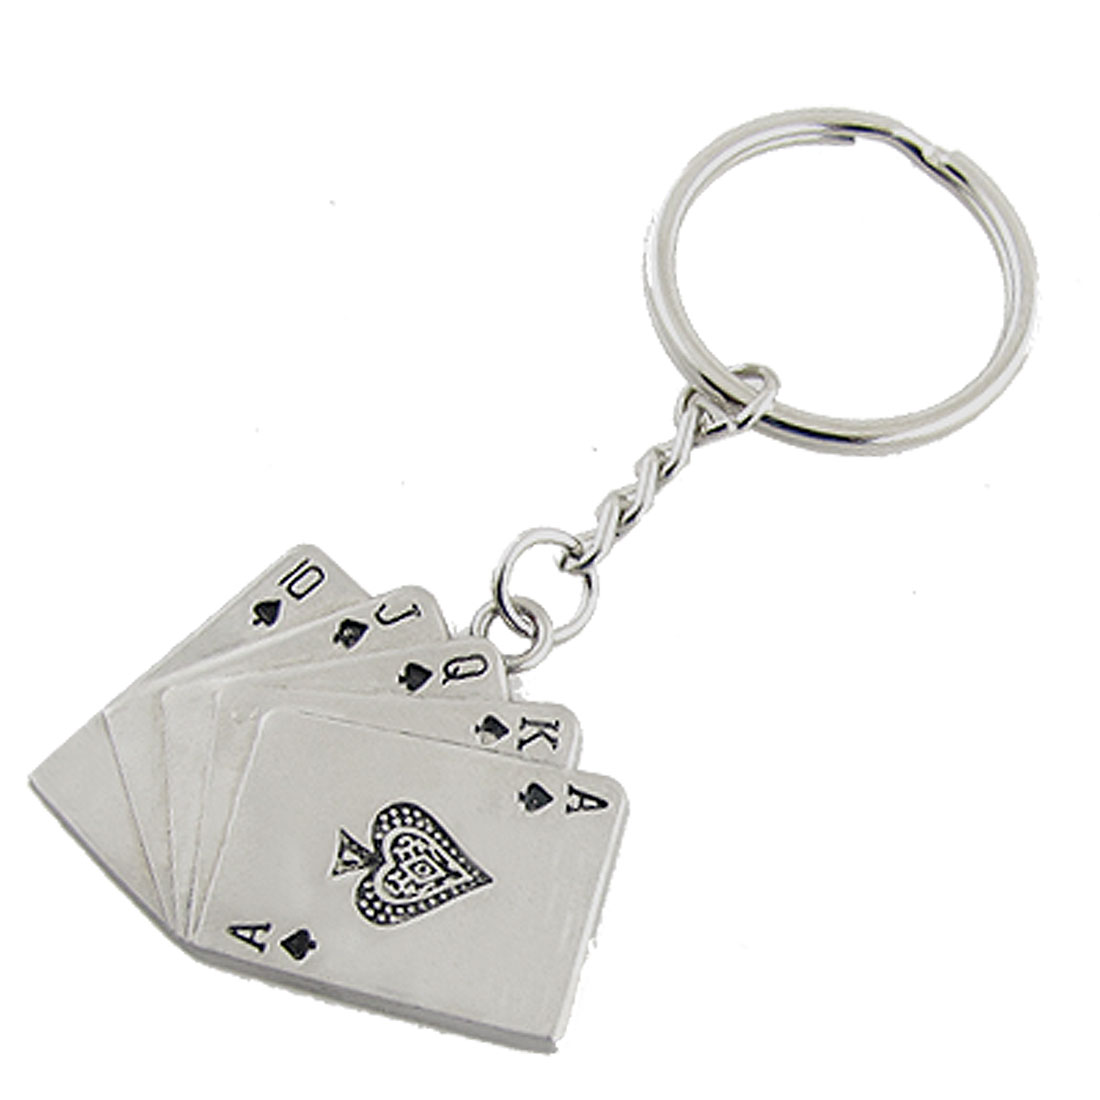 Silver Tone Metal Playing Cards Keyring Keychain